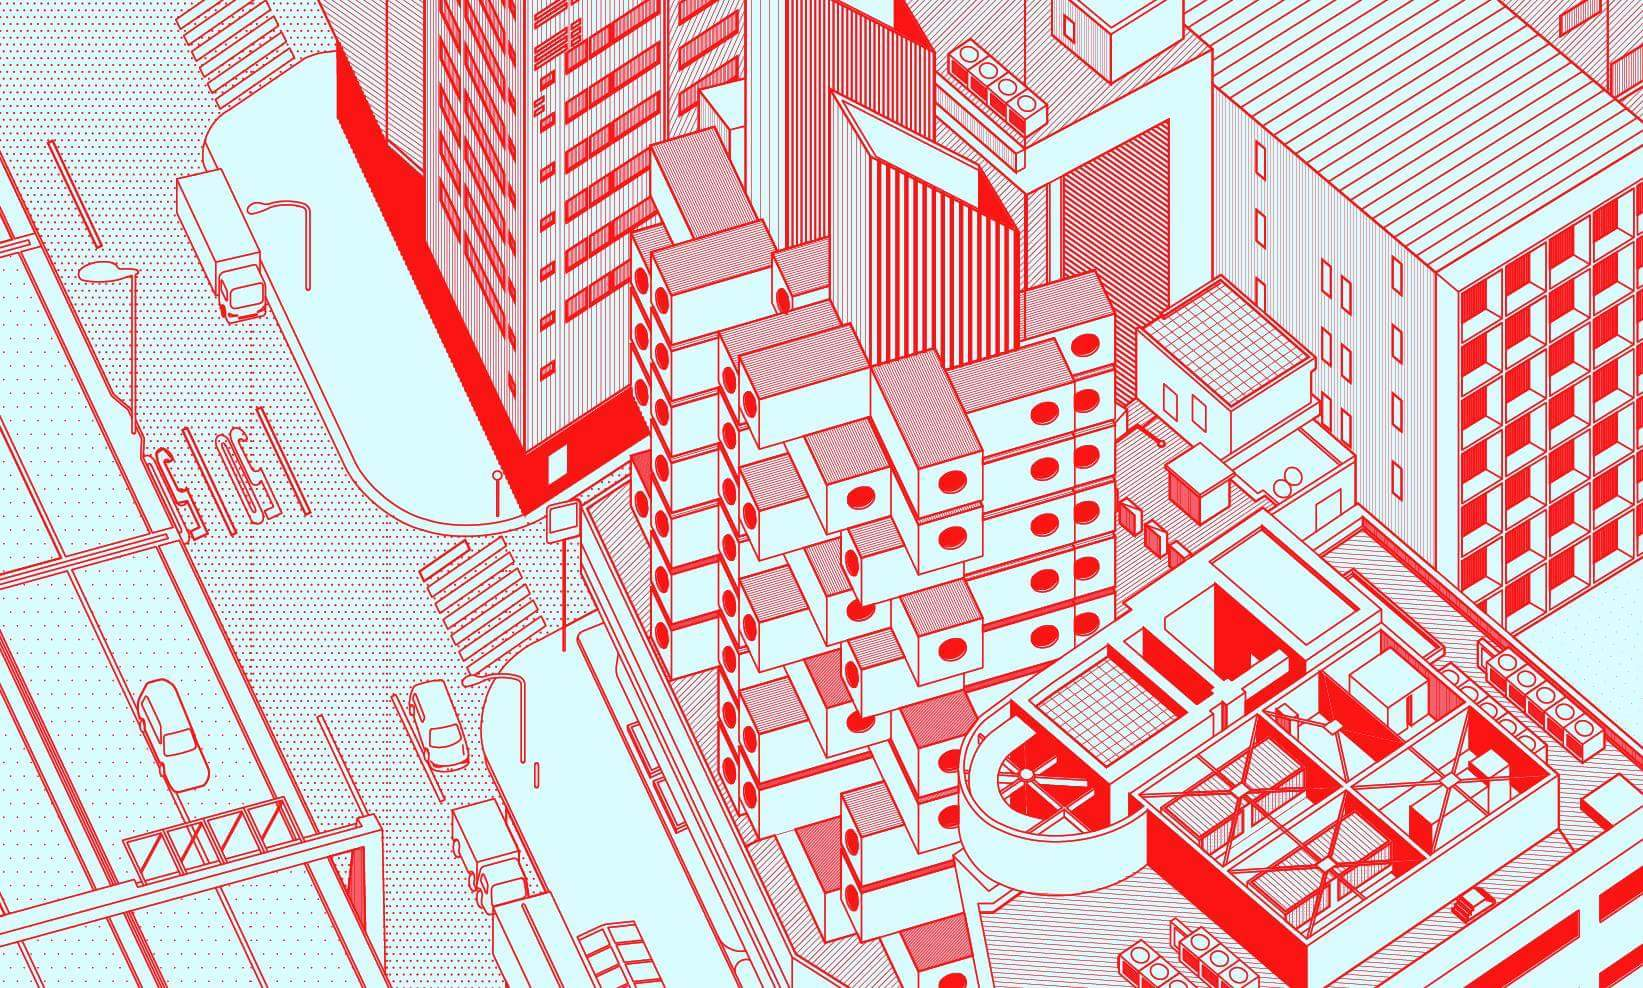 Architectual Illustrations Gallery Of These Fantastical Architectural Illustrations